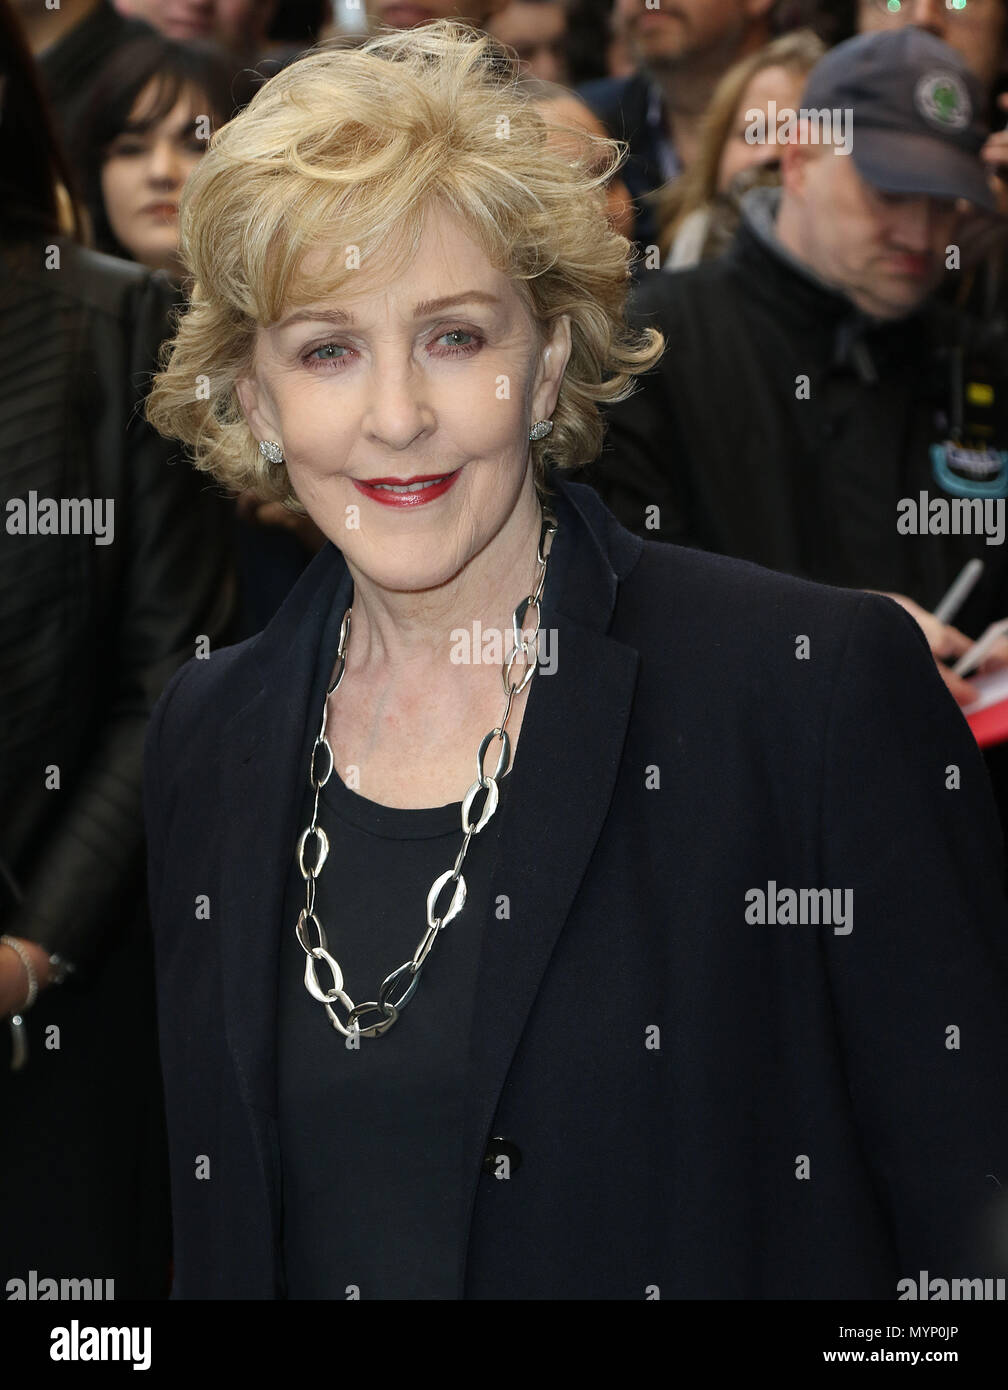 May 1, 2018 - Patricia Hodge attending Chess press night at London Coliseum in London, England, UK - Stock Image